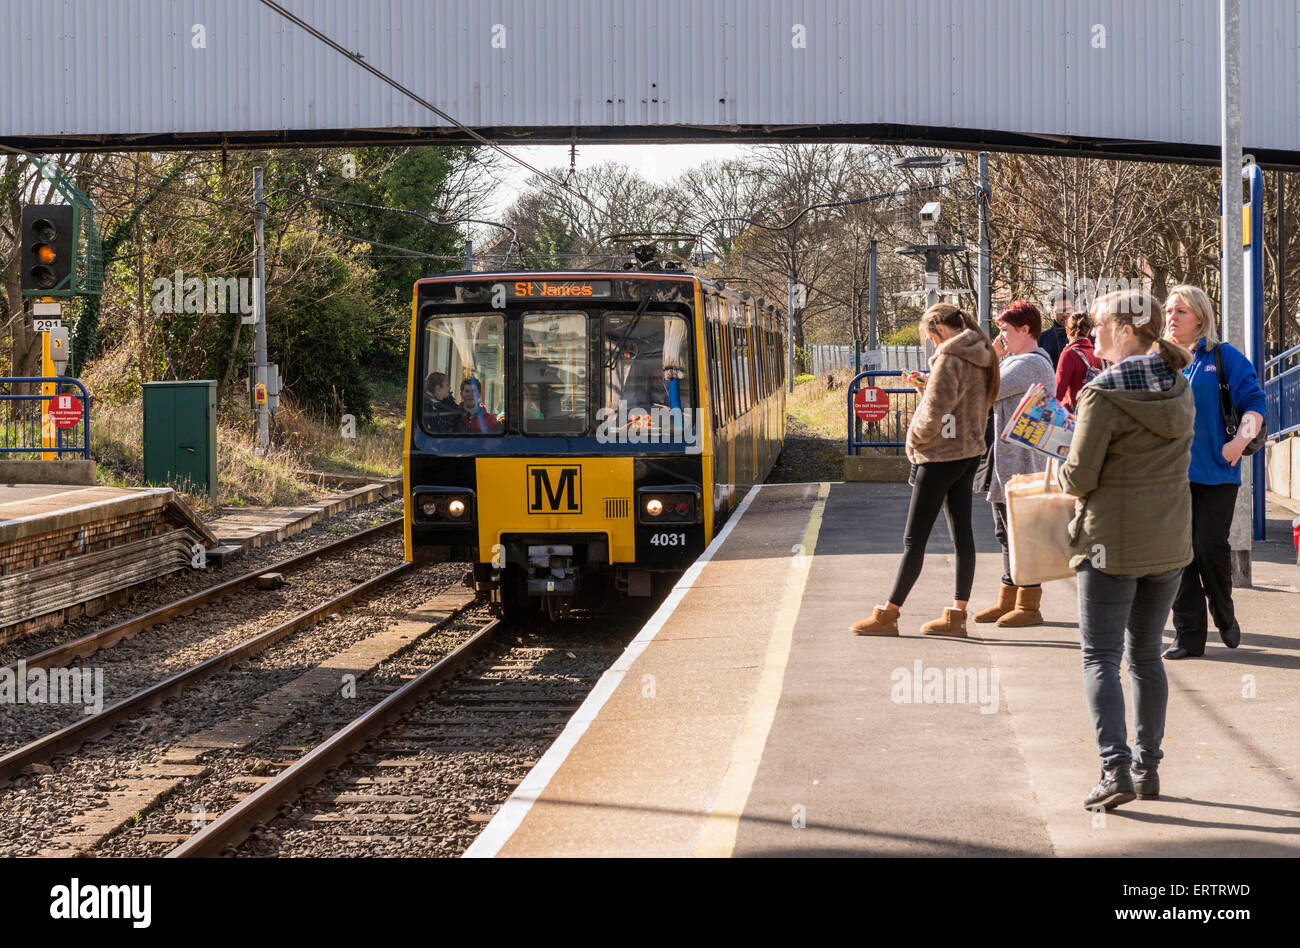 Newcastle Metro train arriving at a station, Newcastle Upon Tyne, North East England, UK - Stock Image